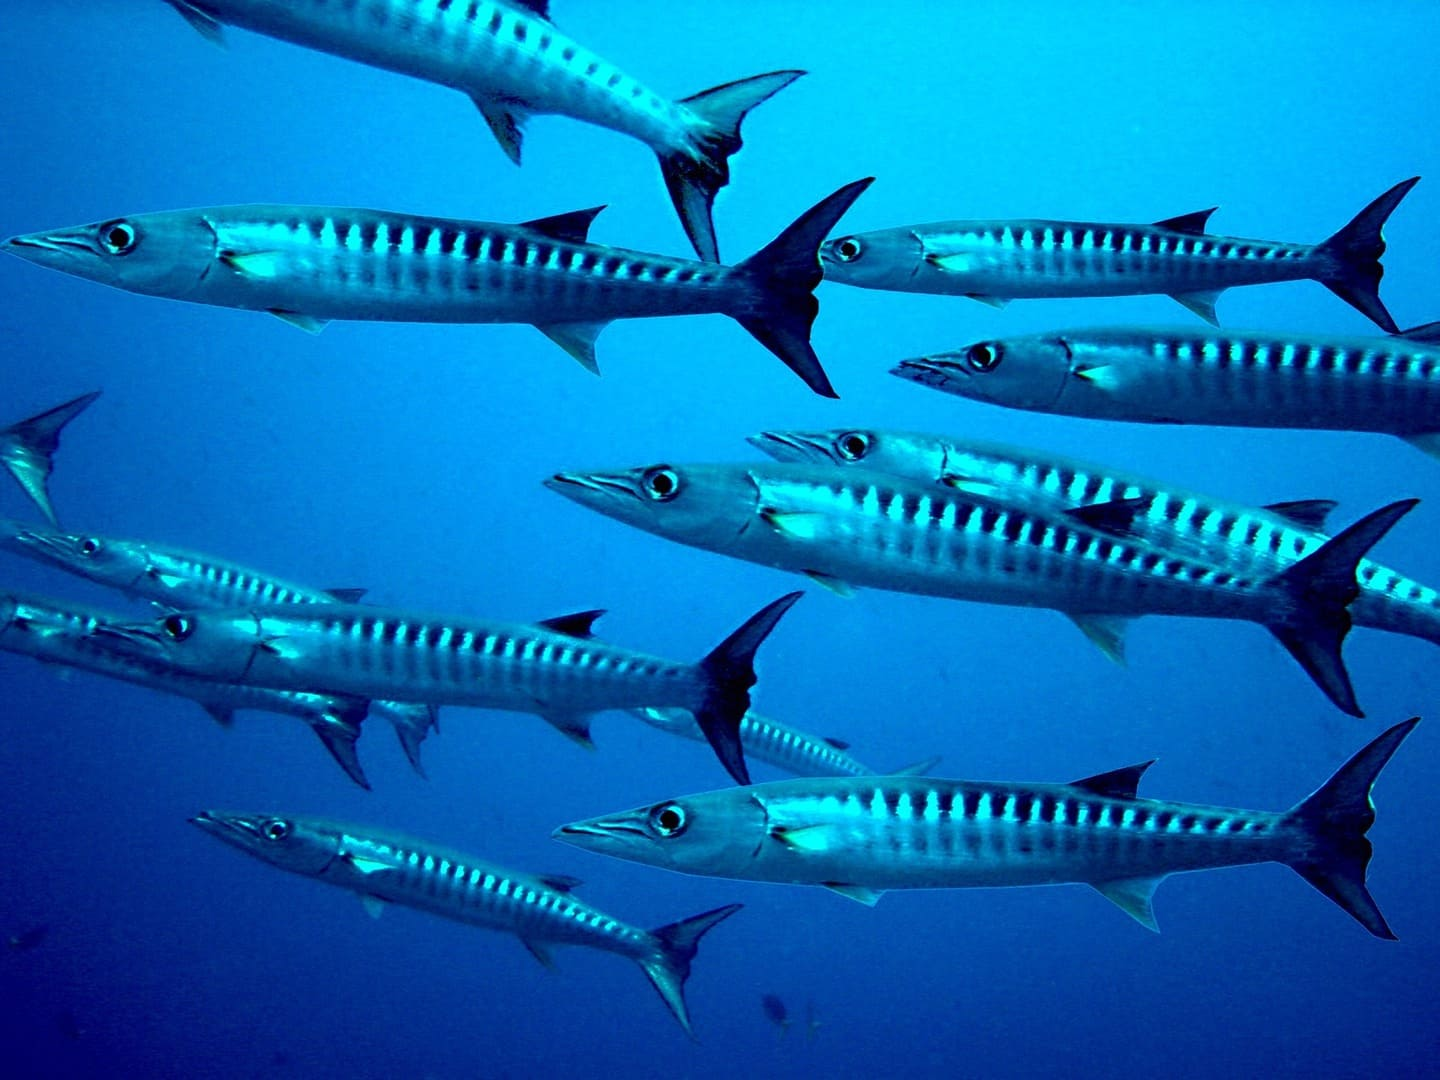 A school of Barracudas in the waters of Malaysia